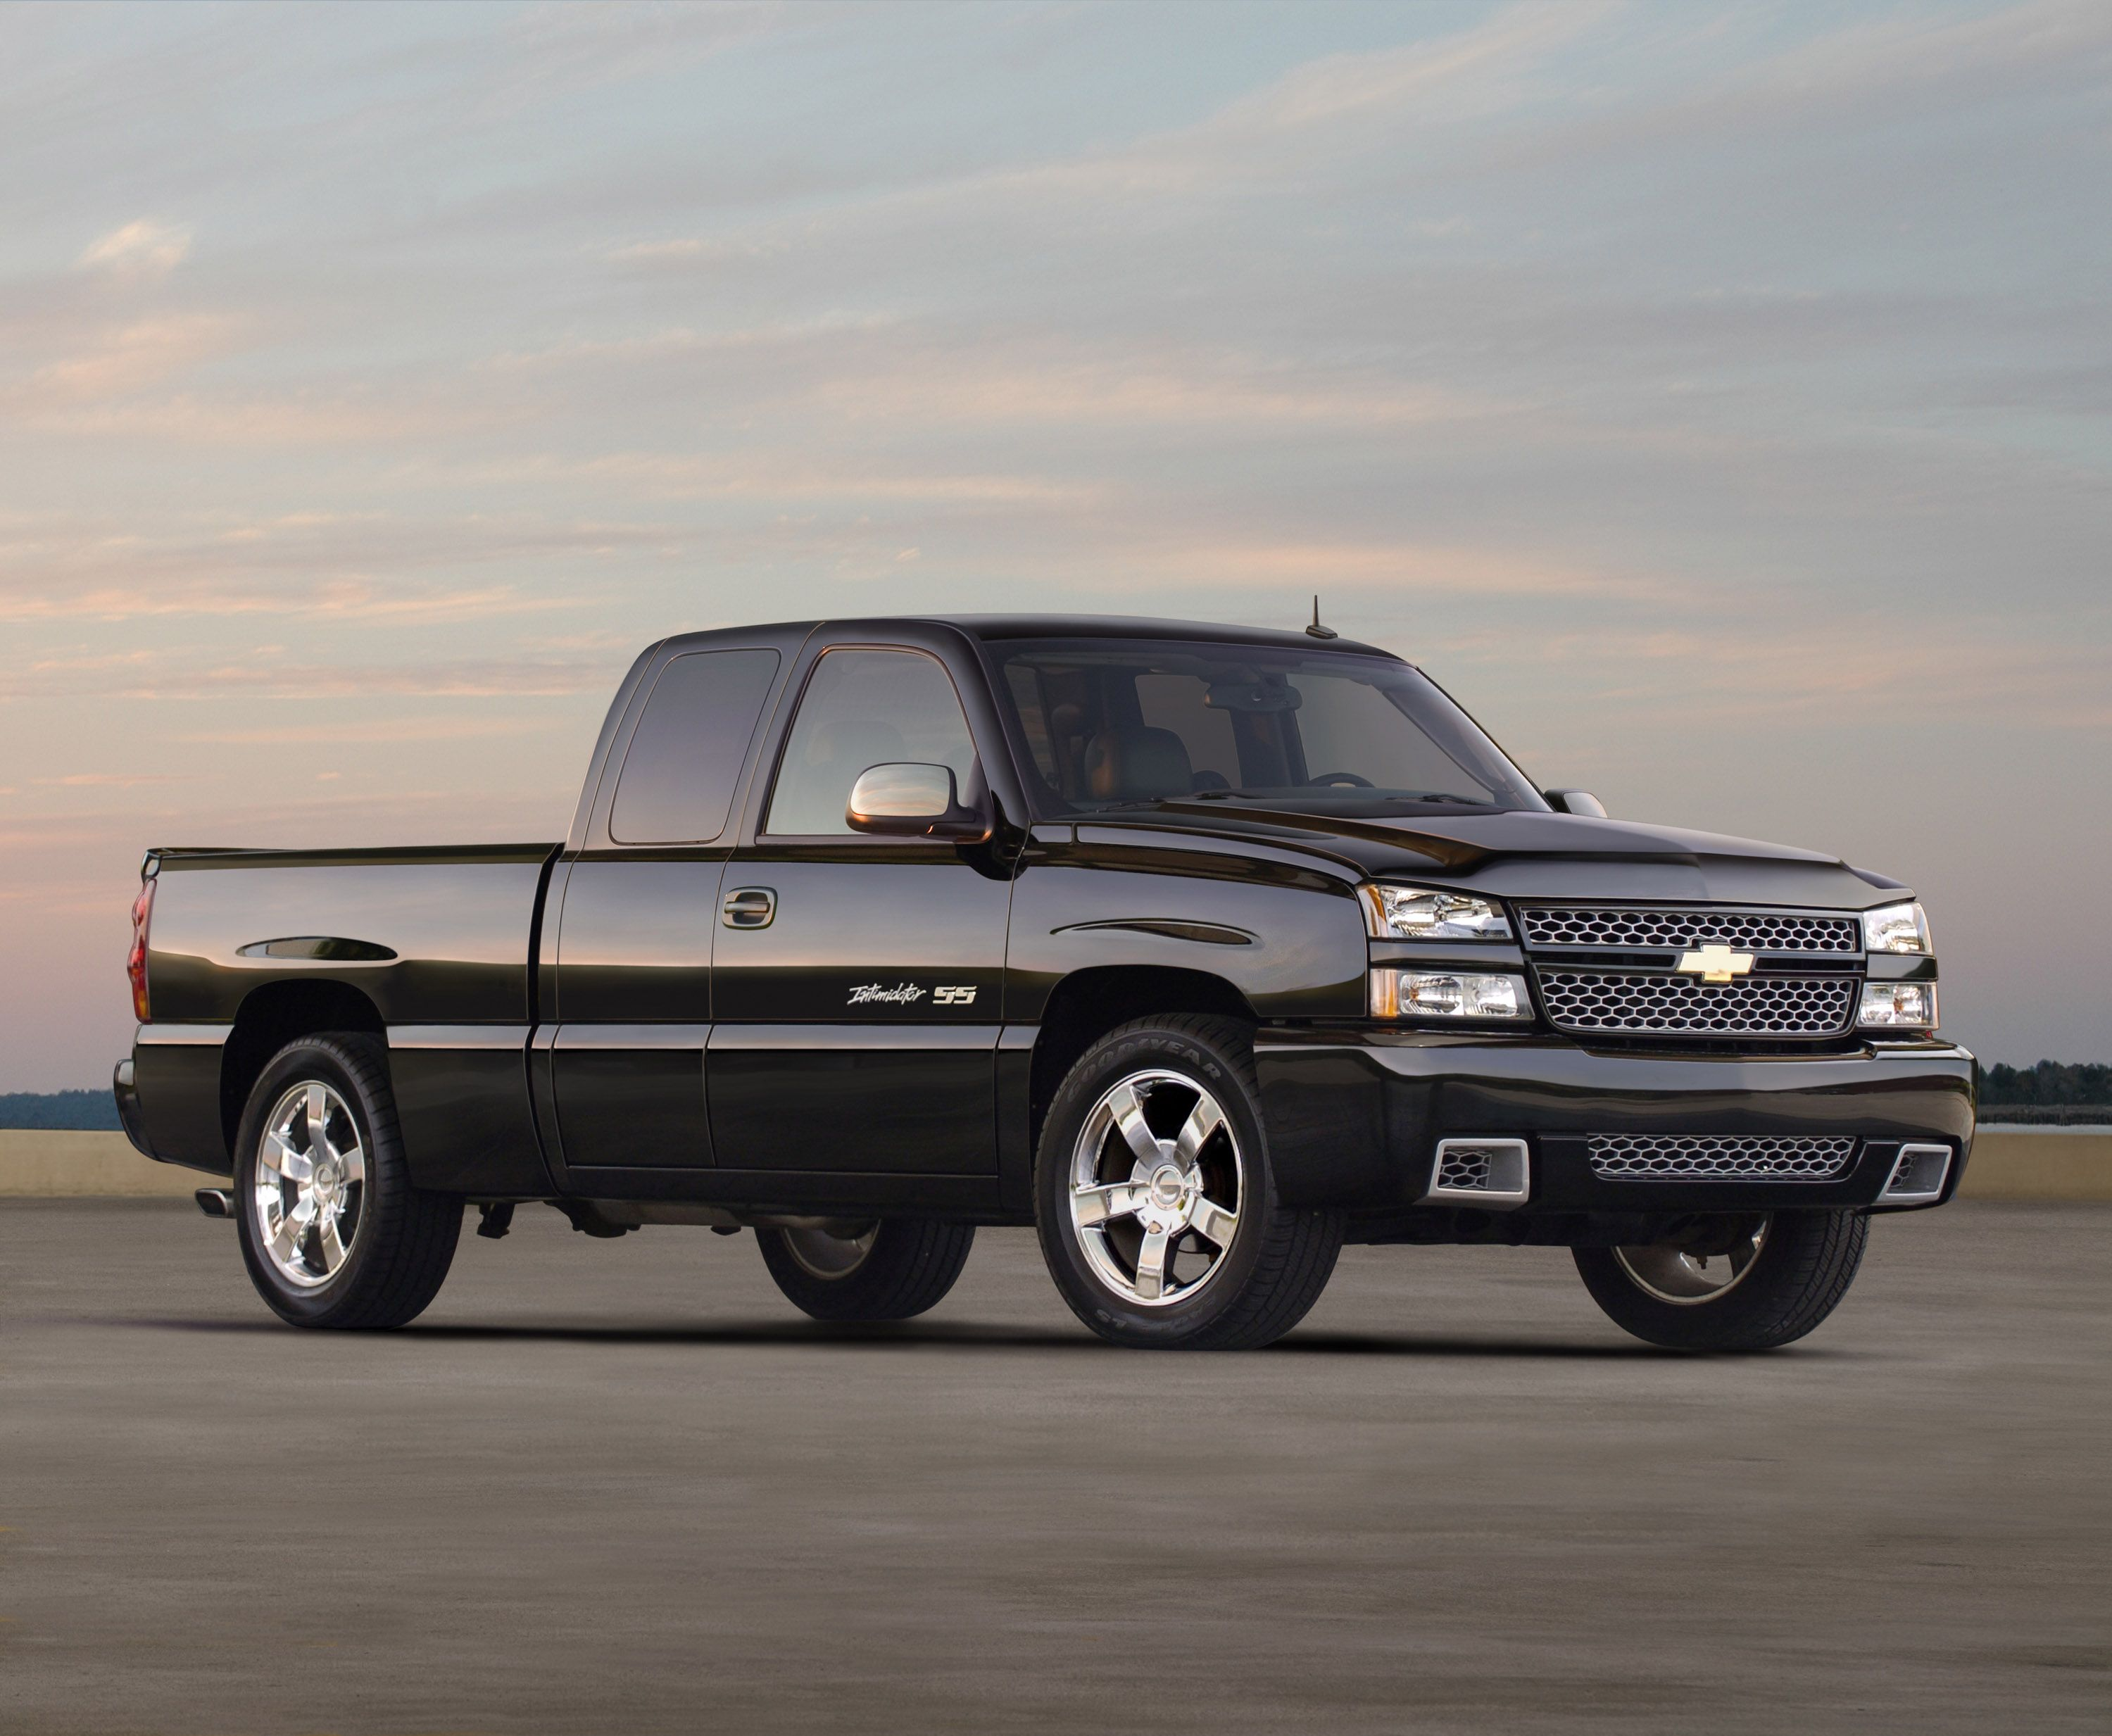 Chevrolet silverado 454 ss 345 horsepower and 380 pound feet of torque